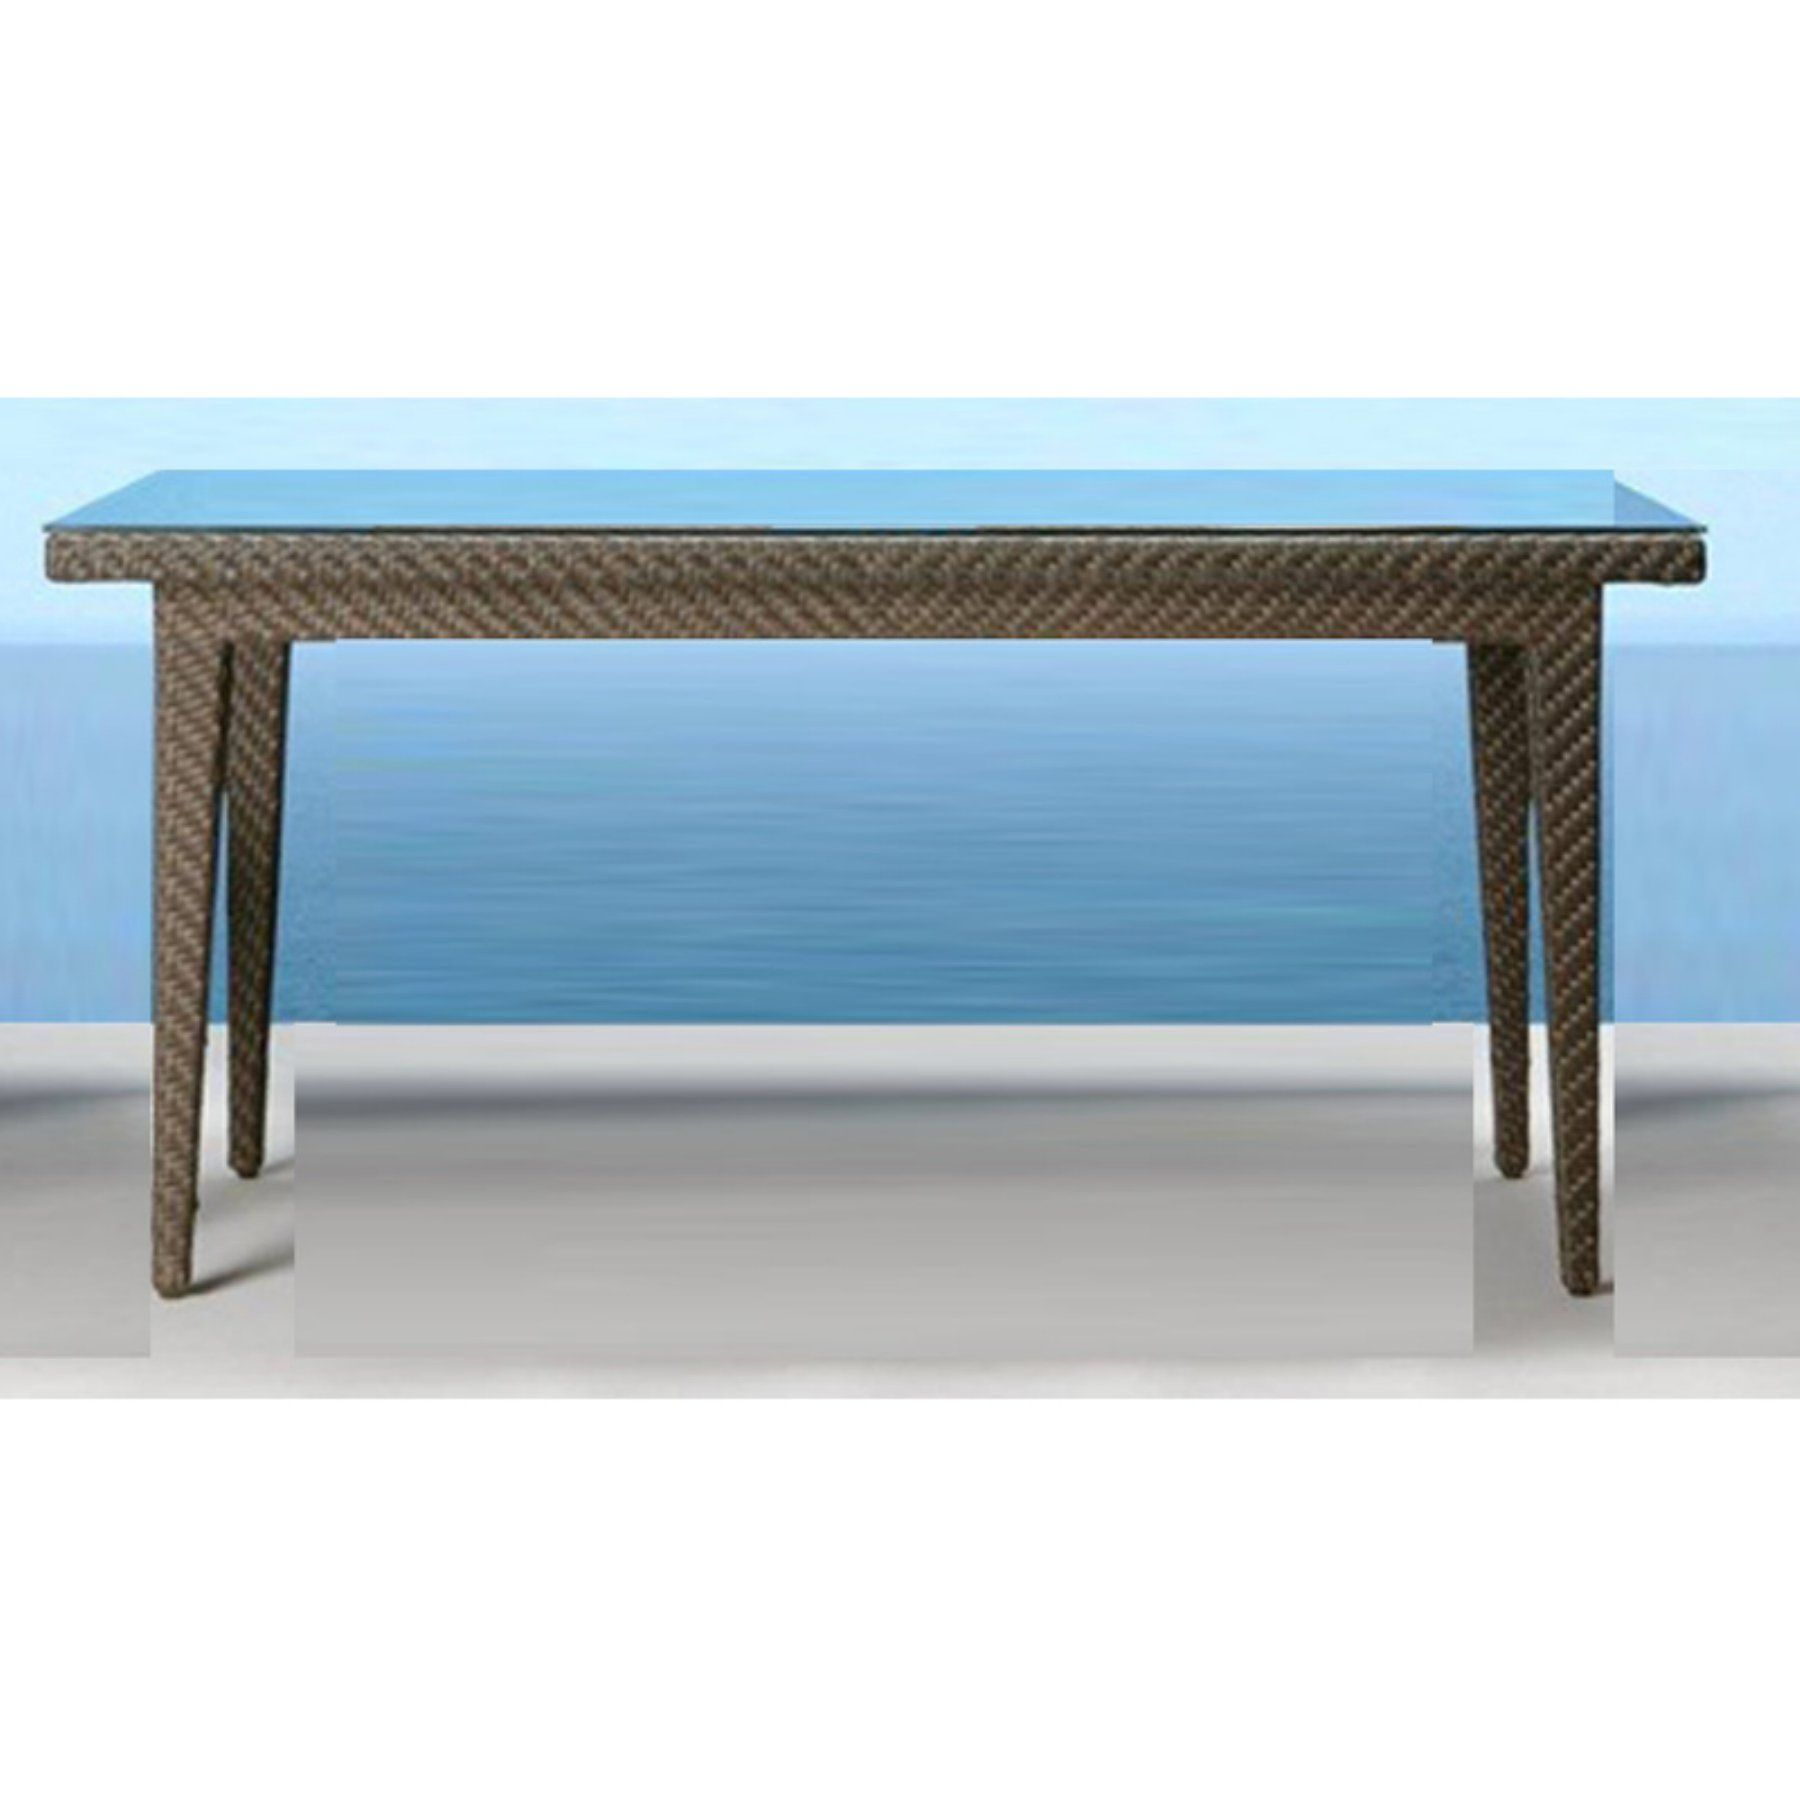 Outdoor Hospitality Rattan Soho Small Rectangular Woven Patio Dining - Small rectangular patio dining table